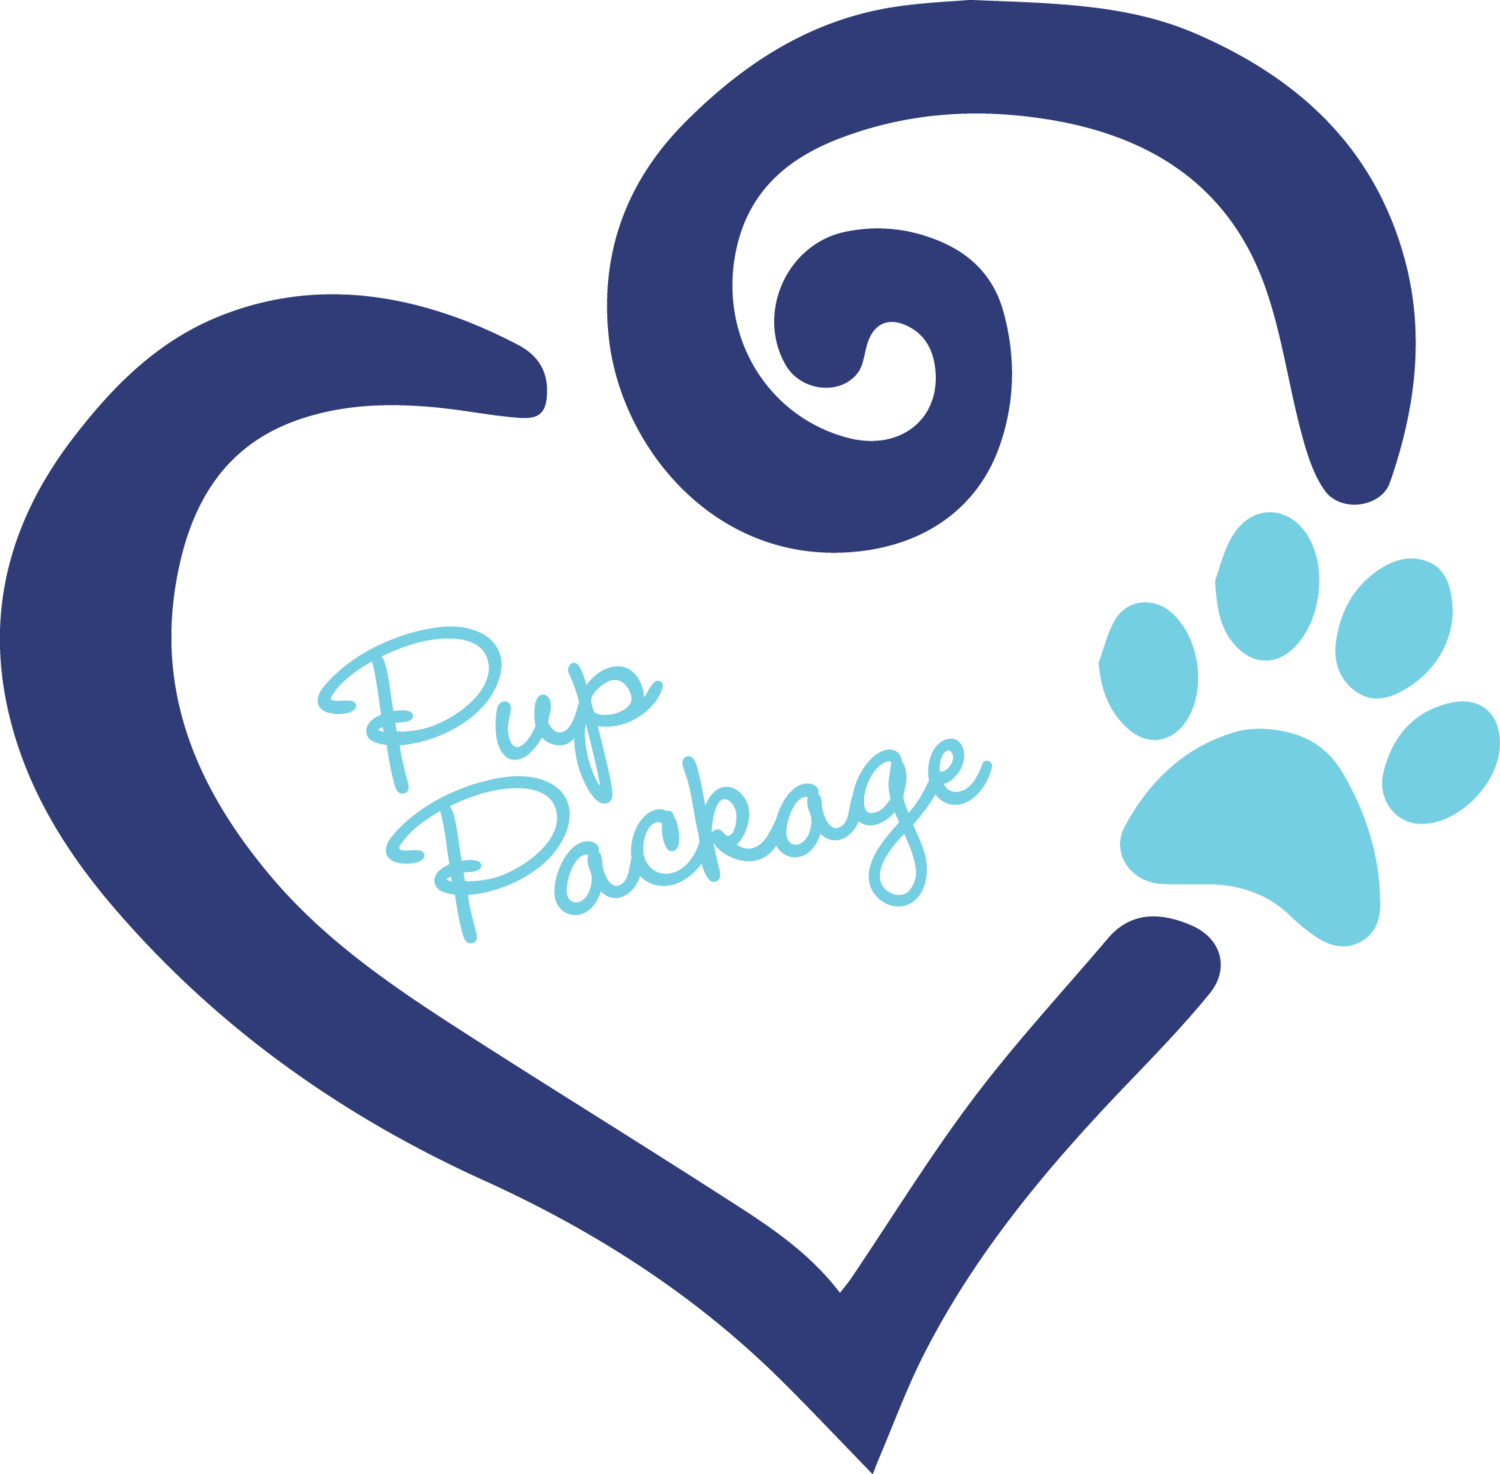 Pup Package